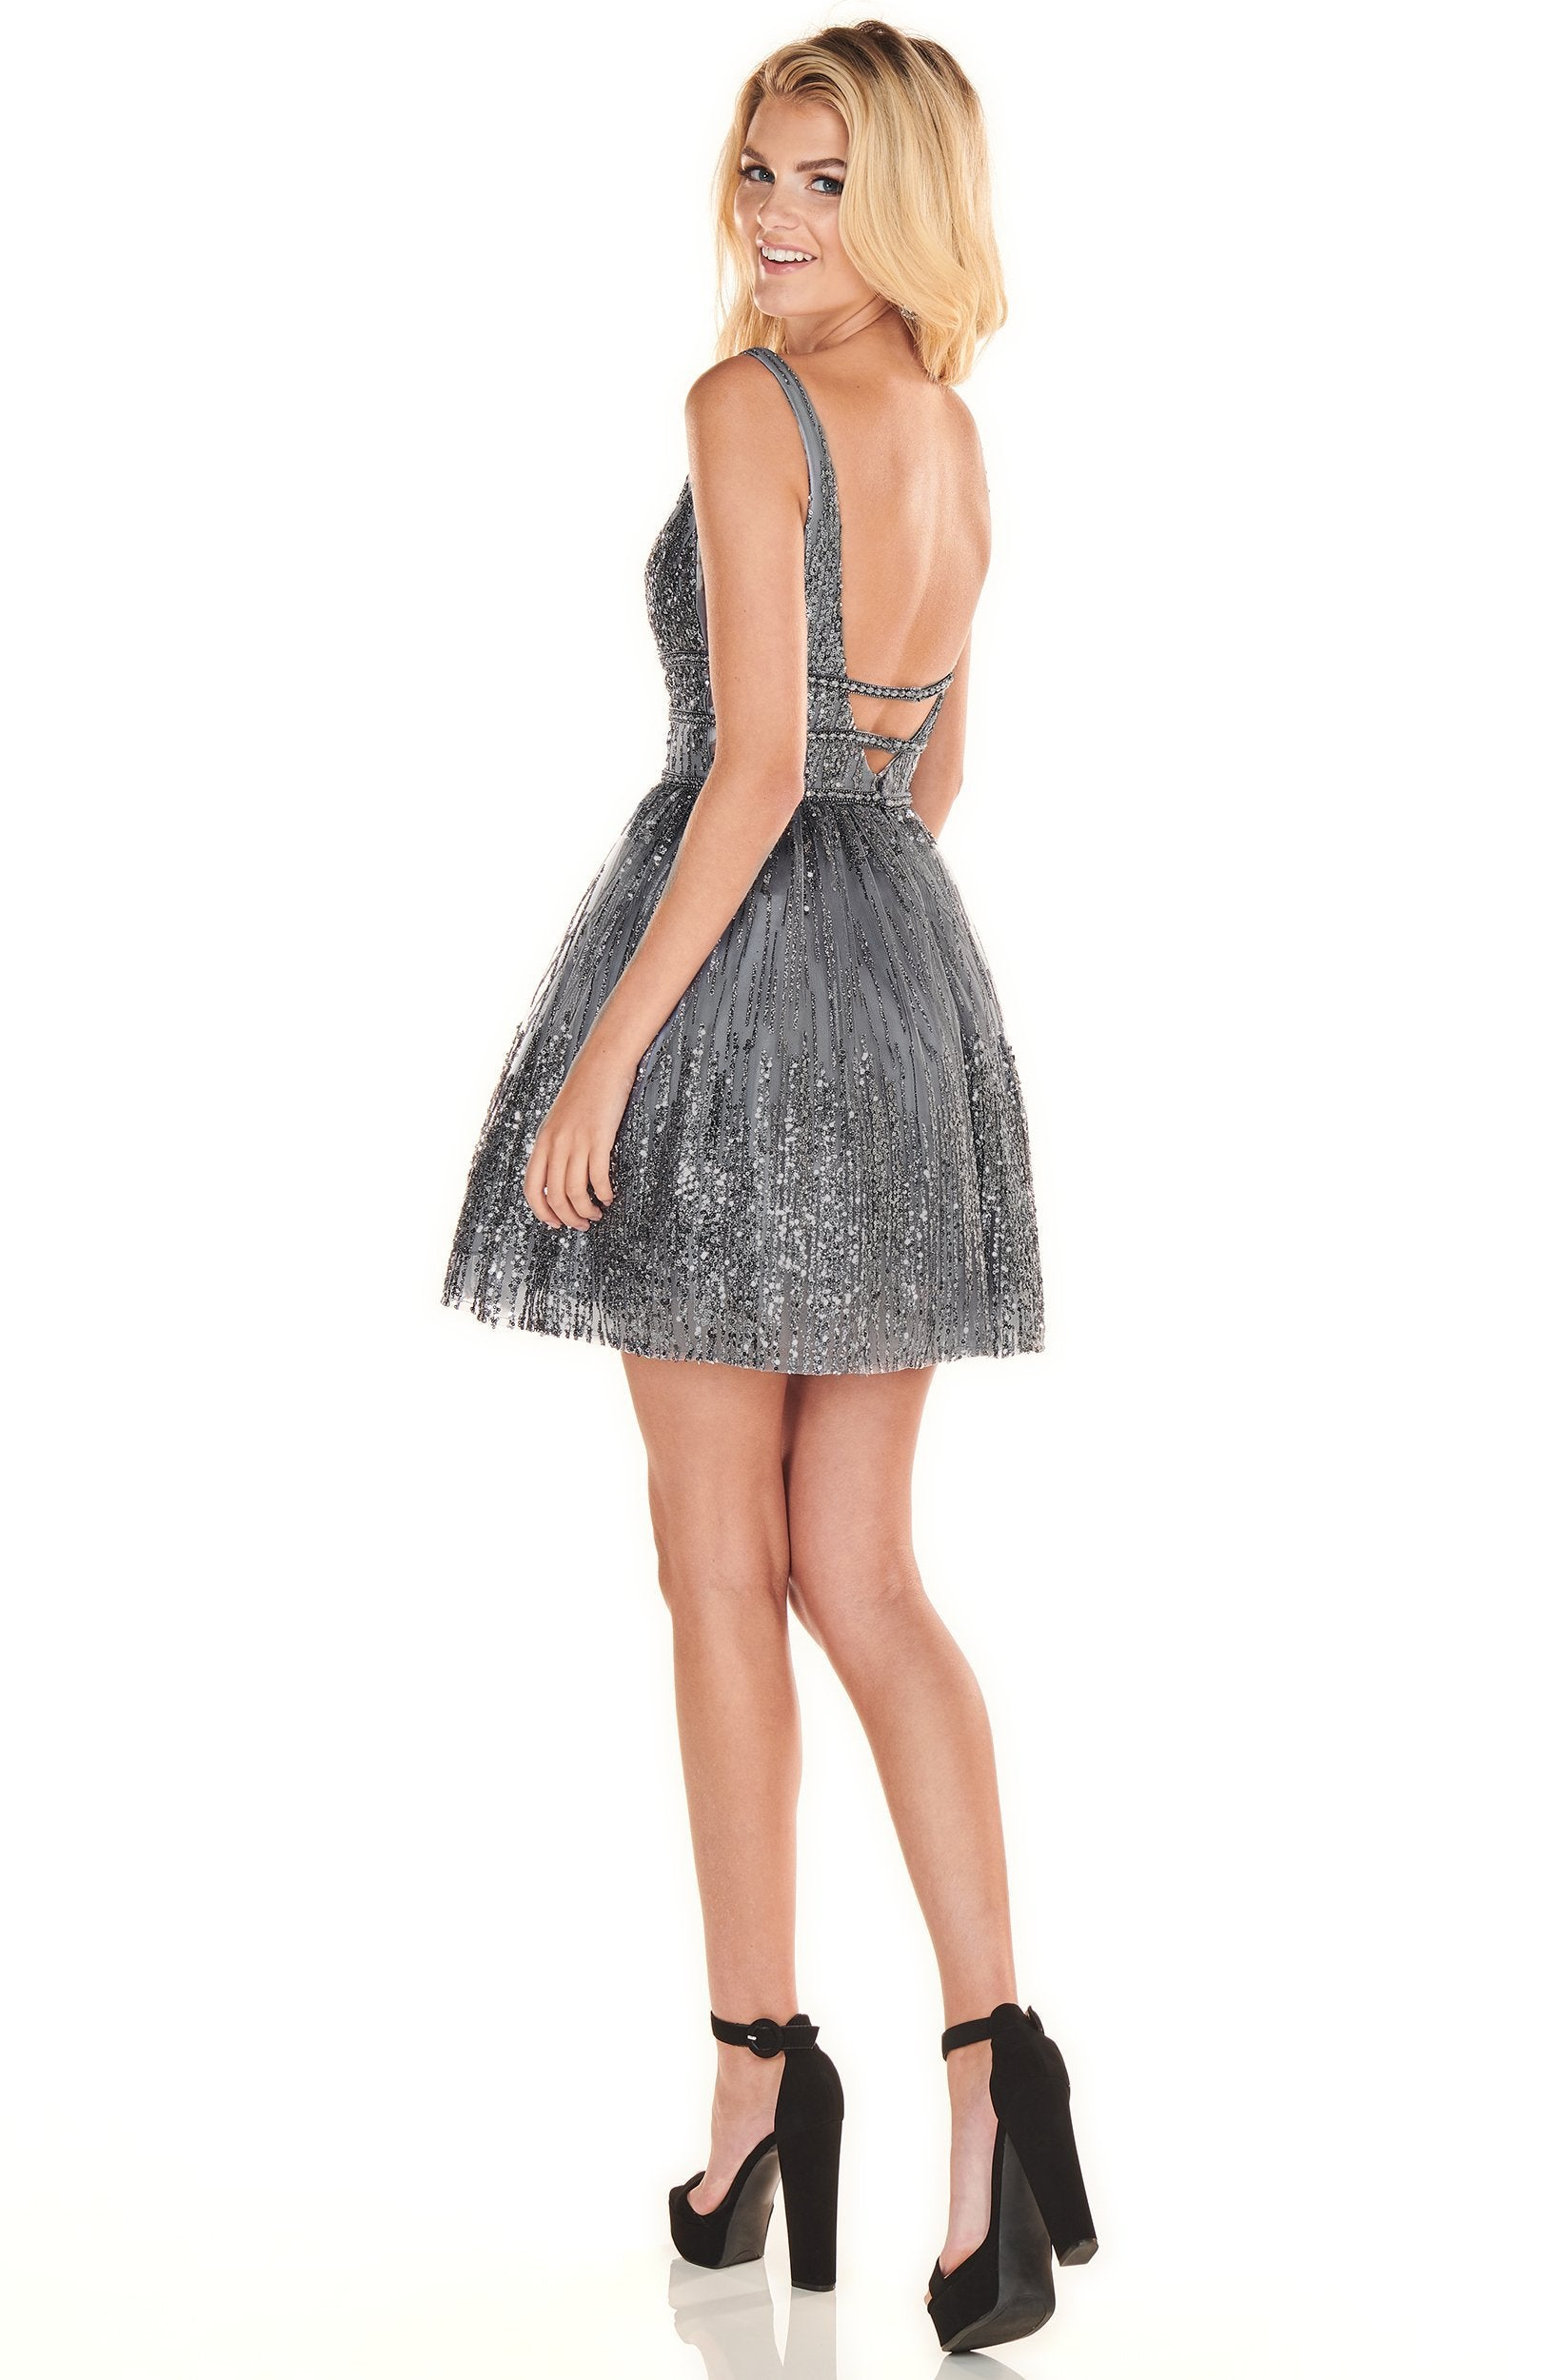 Rachel Allan Shorts - 4108 Sexy V-Neck Embellished A-Line Mini Dress In Gray